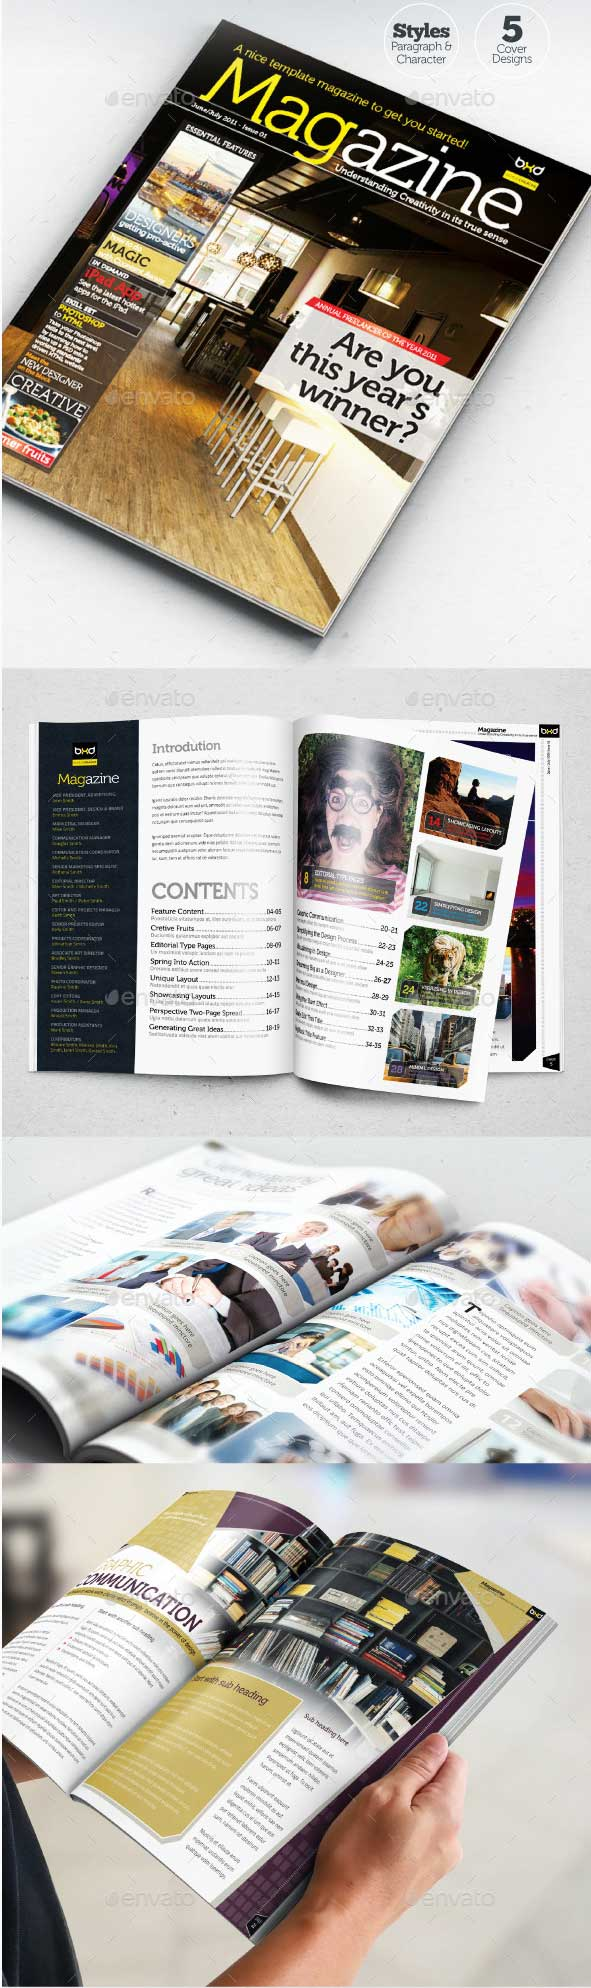 magazine-template-indesign-40-page-layout-v1